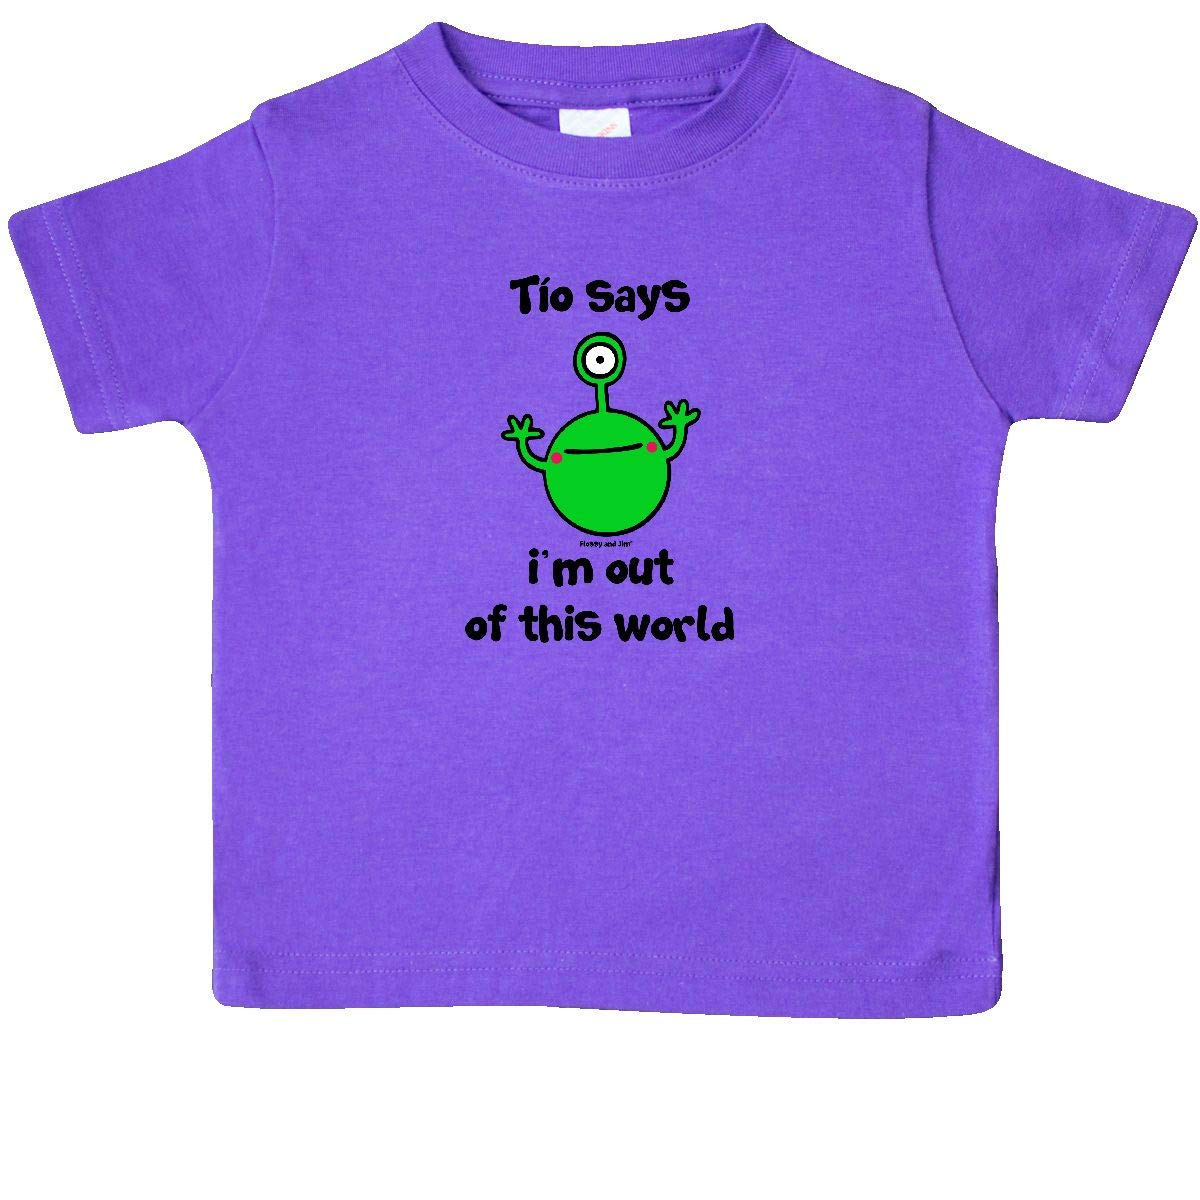 inktastic TIO Flossy and Jim Out of This World Baby T-Shirt